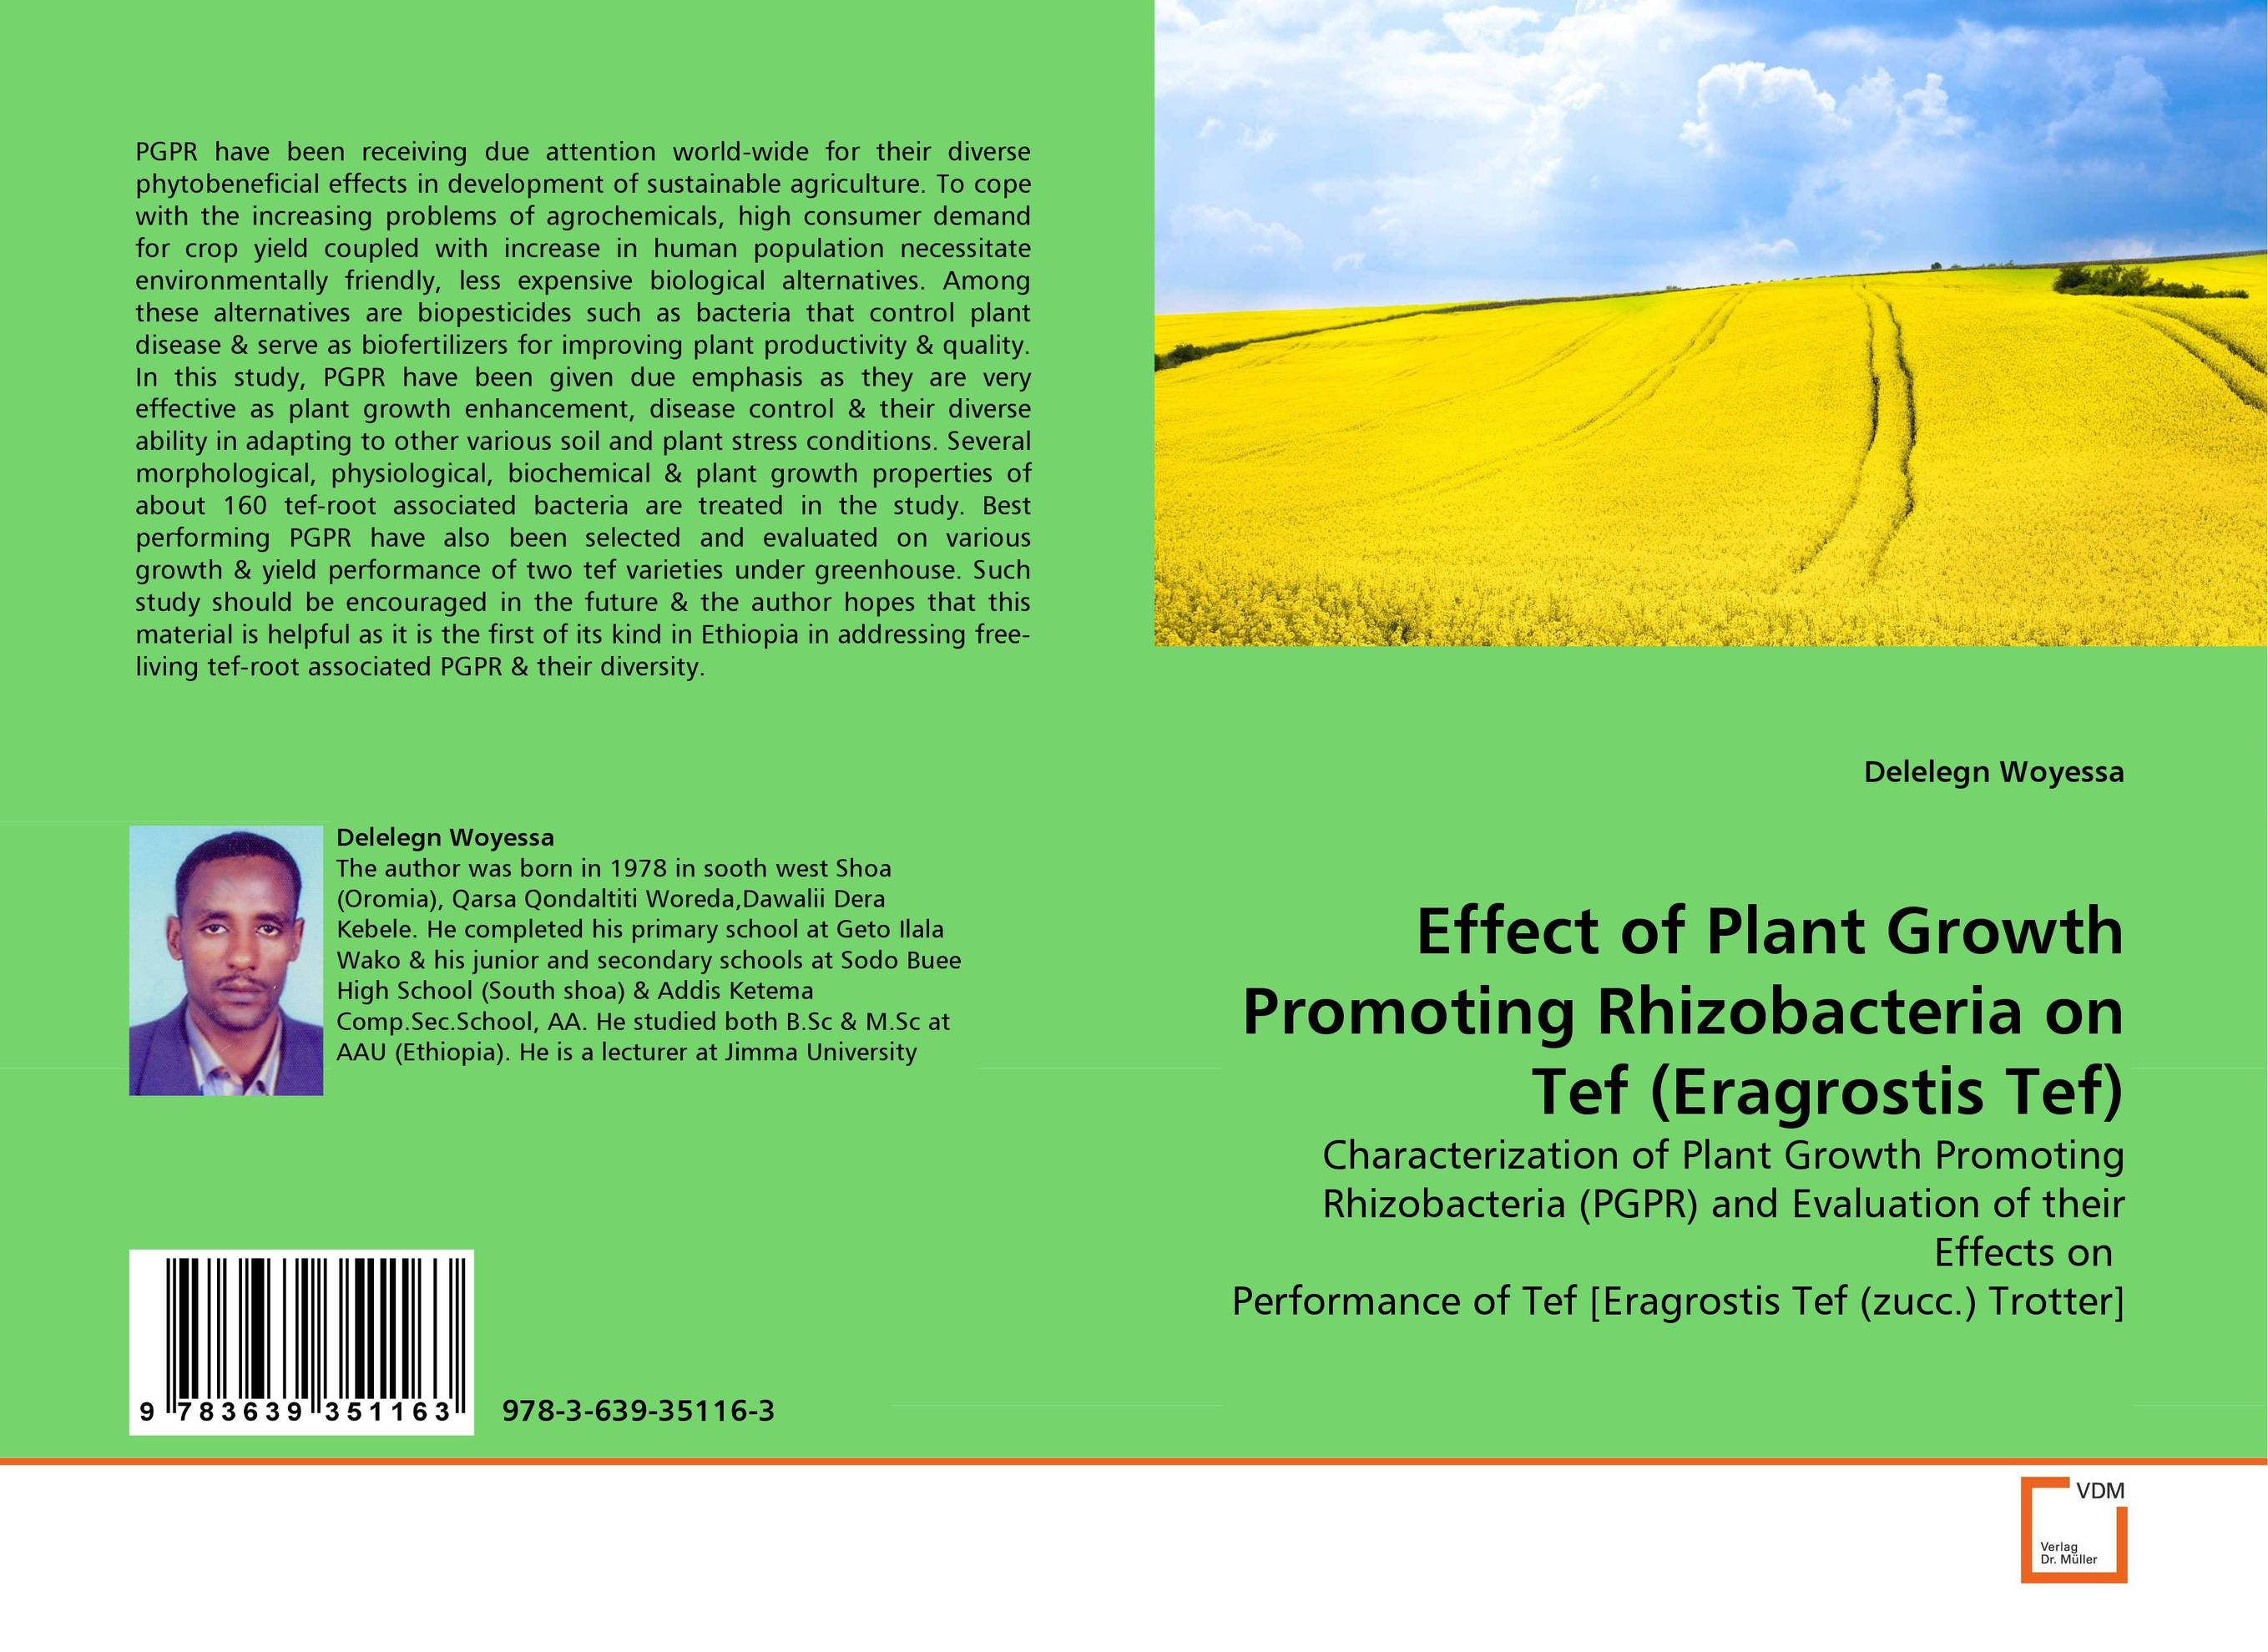 Effect of Plant Growth Promoting Rhizobacteria on Tef (Eragrostis Tef) plant growth promoting rhizobacteria